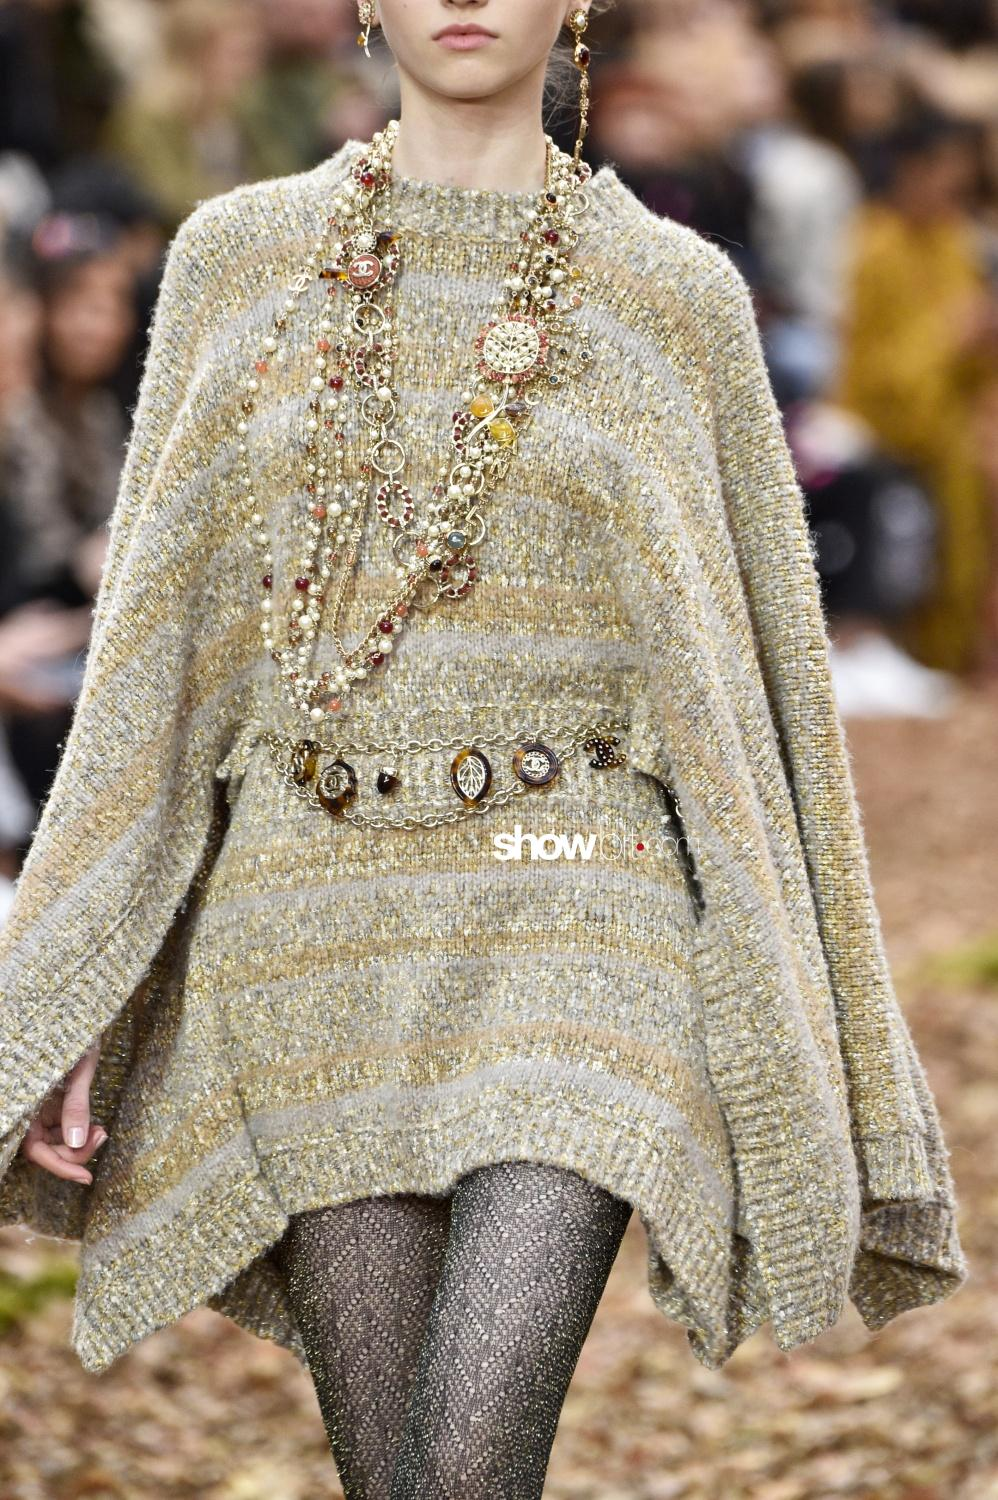 Chanel close-up knitwear Woman Fall 2018 Paris